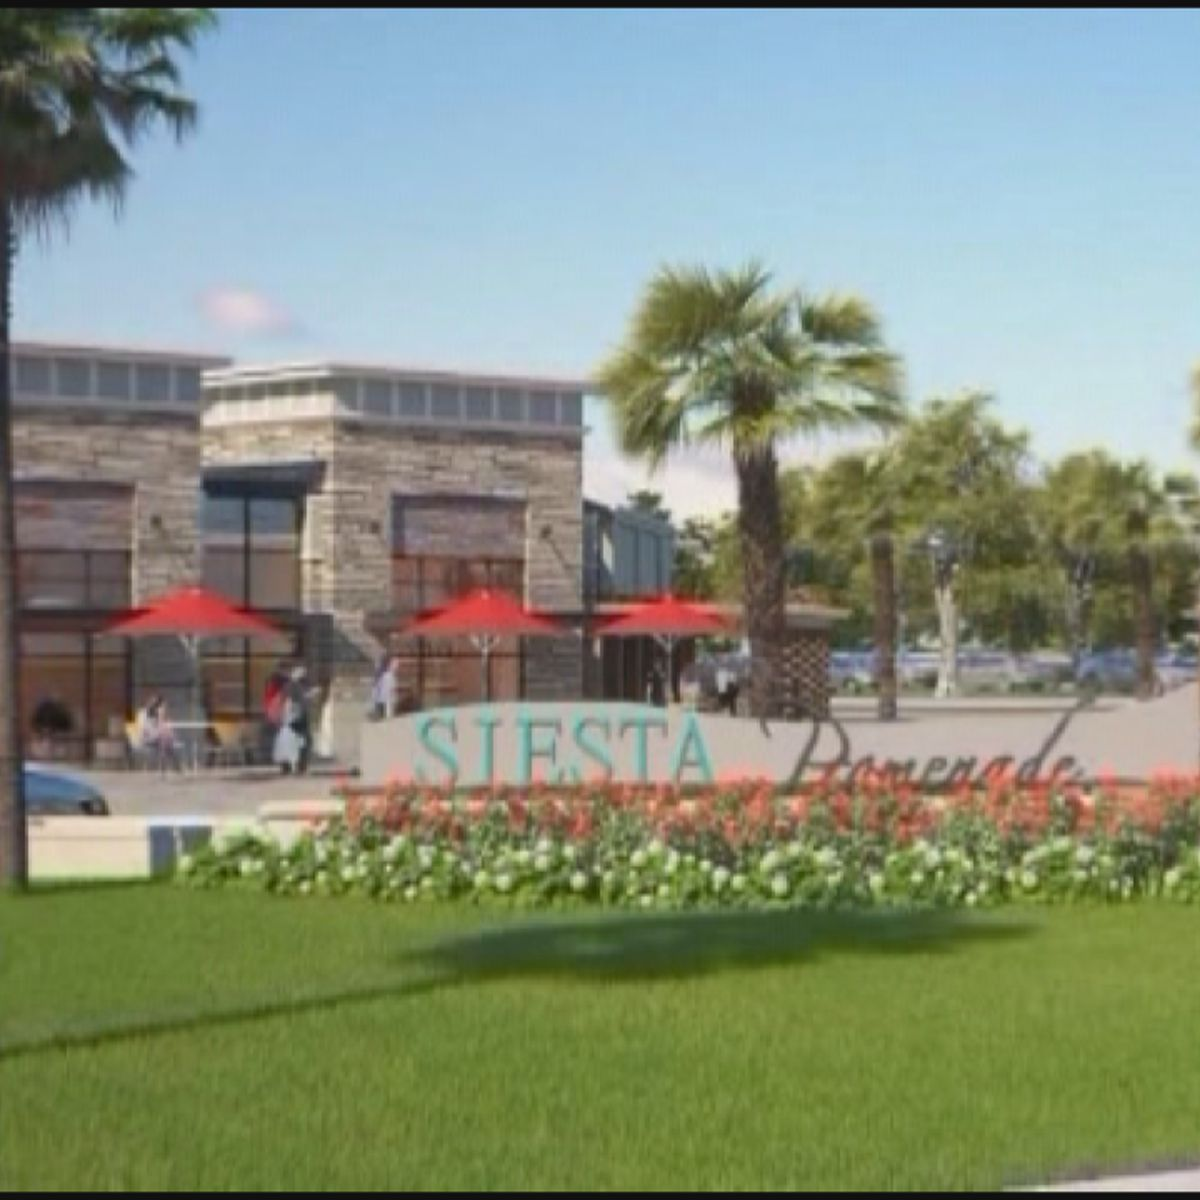 Commission recommends approval for development of the Siesta Key Promenade